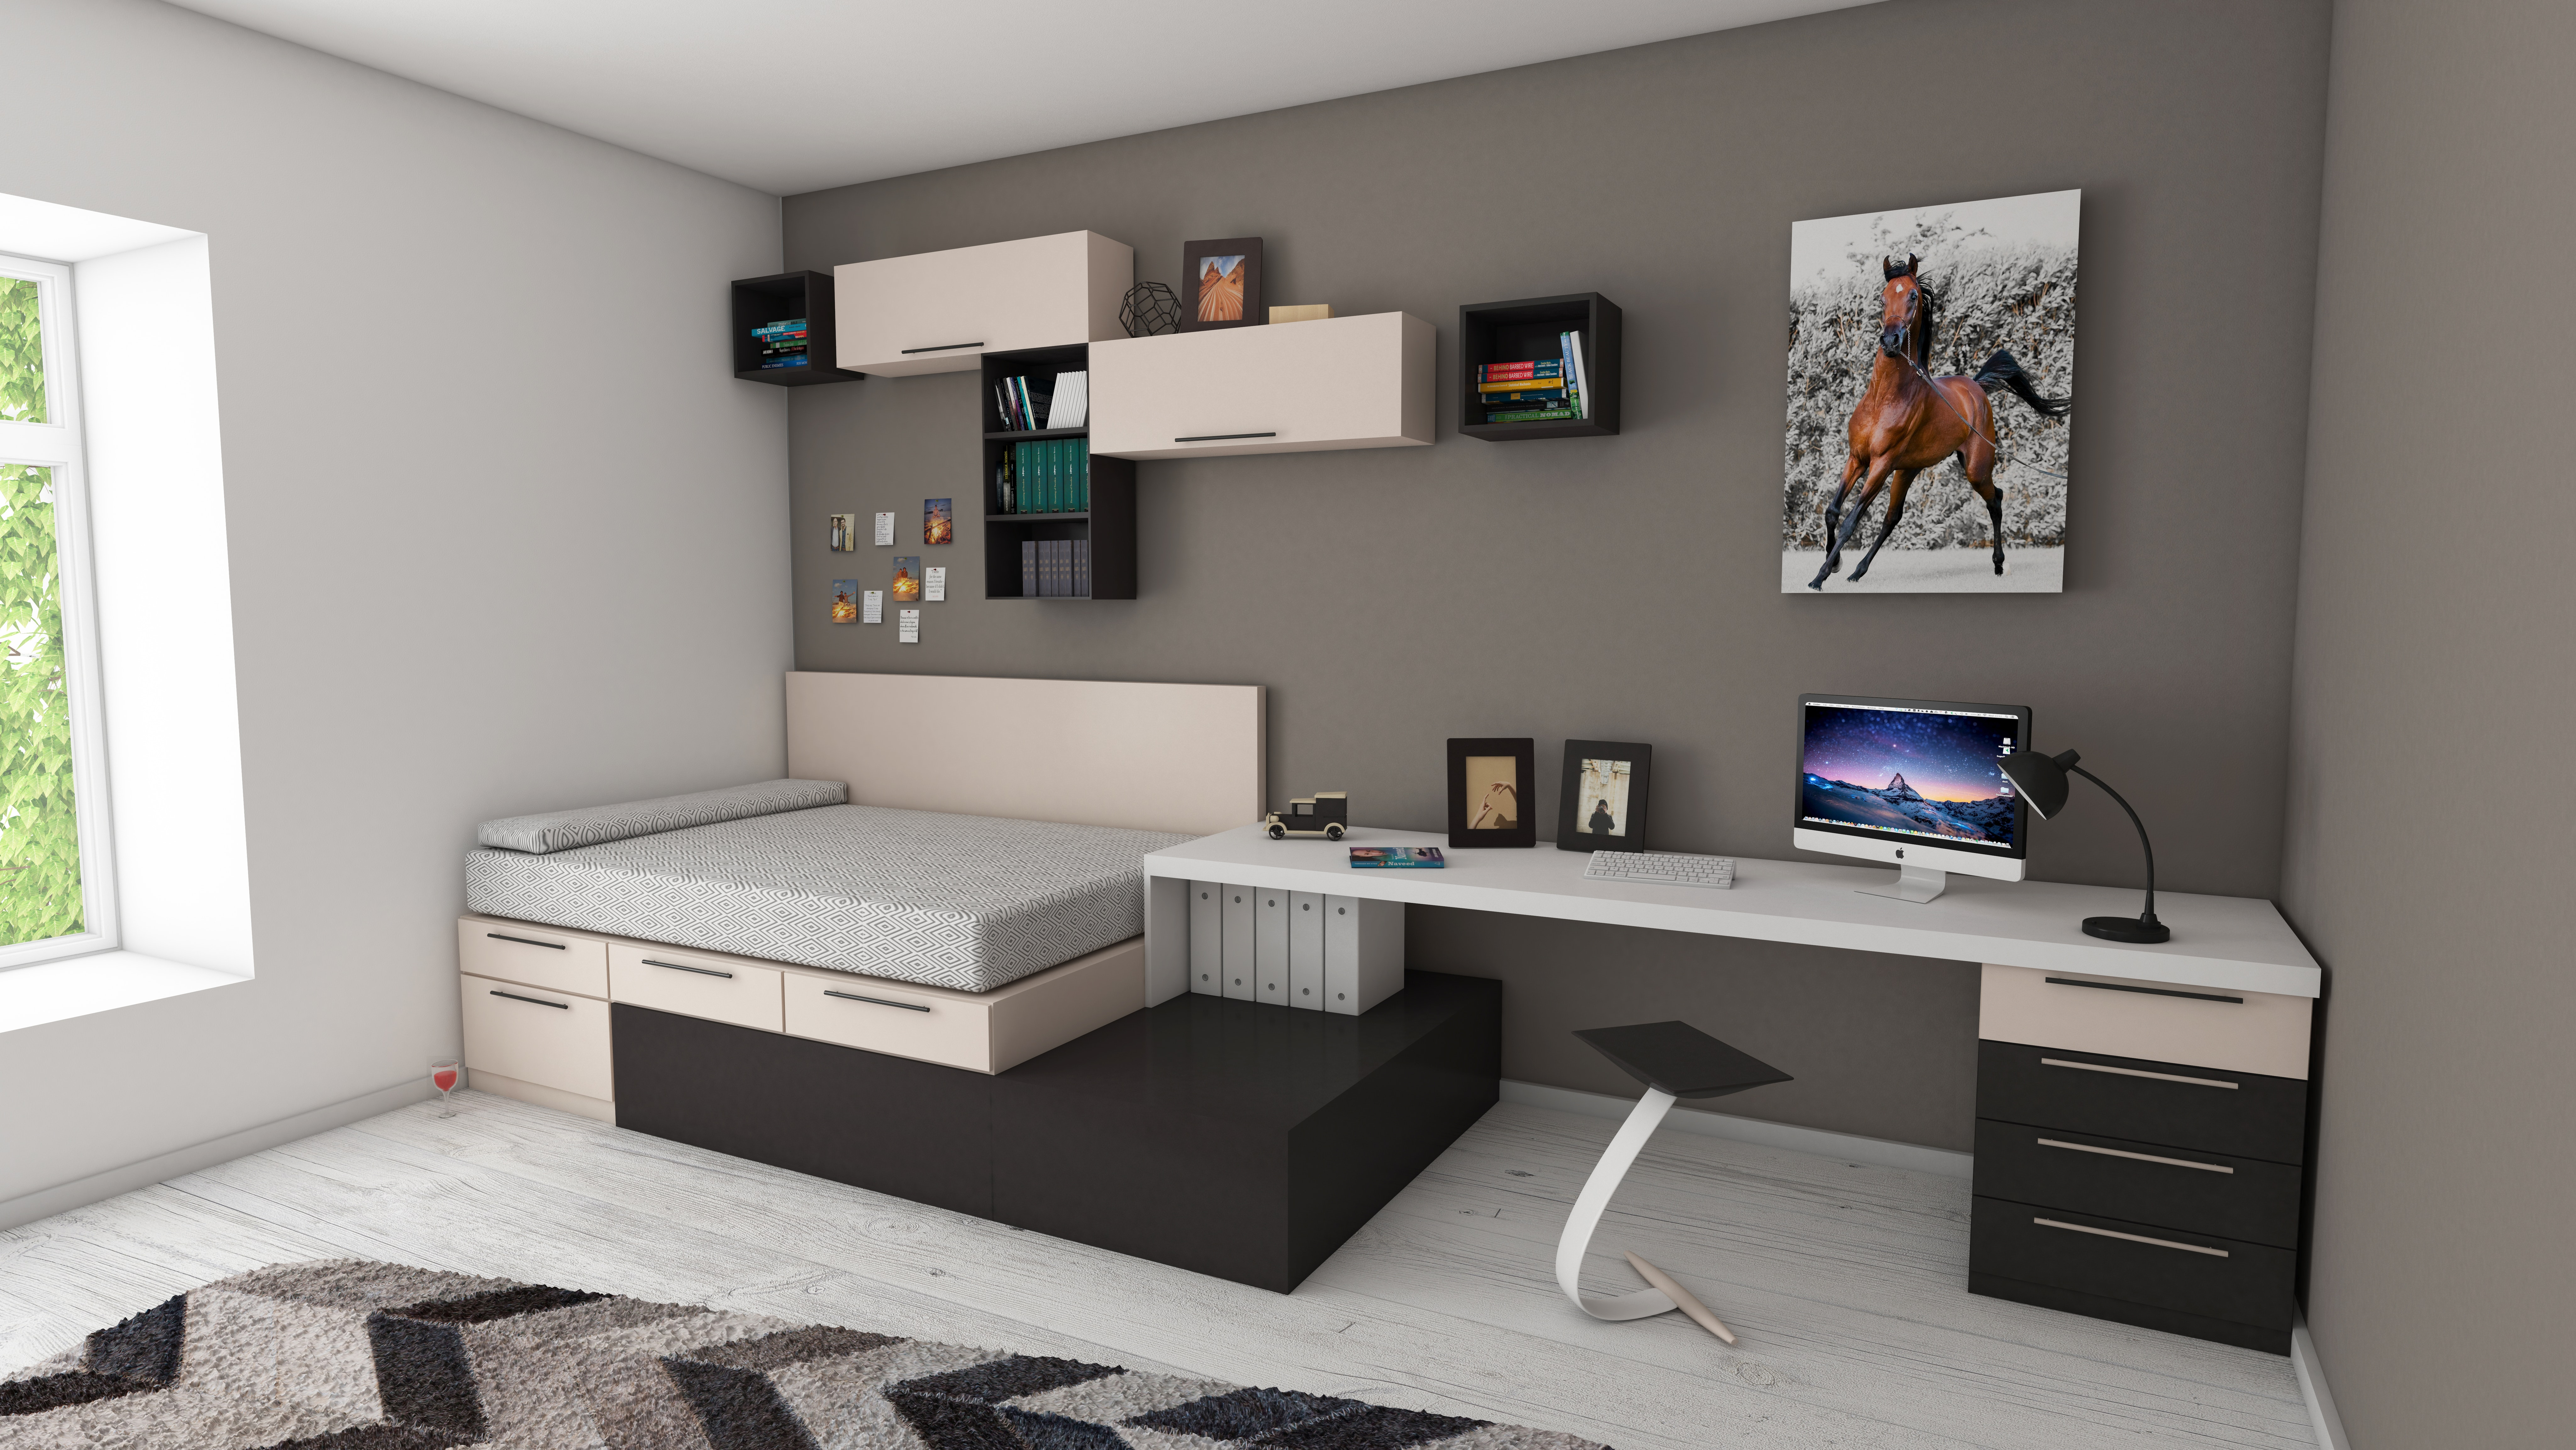 Related Searches: Interior Living Room Furniture Home Design